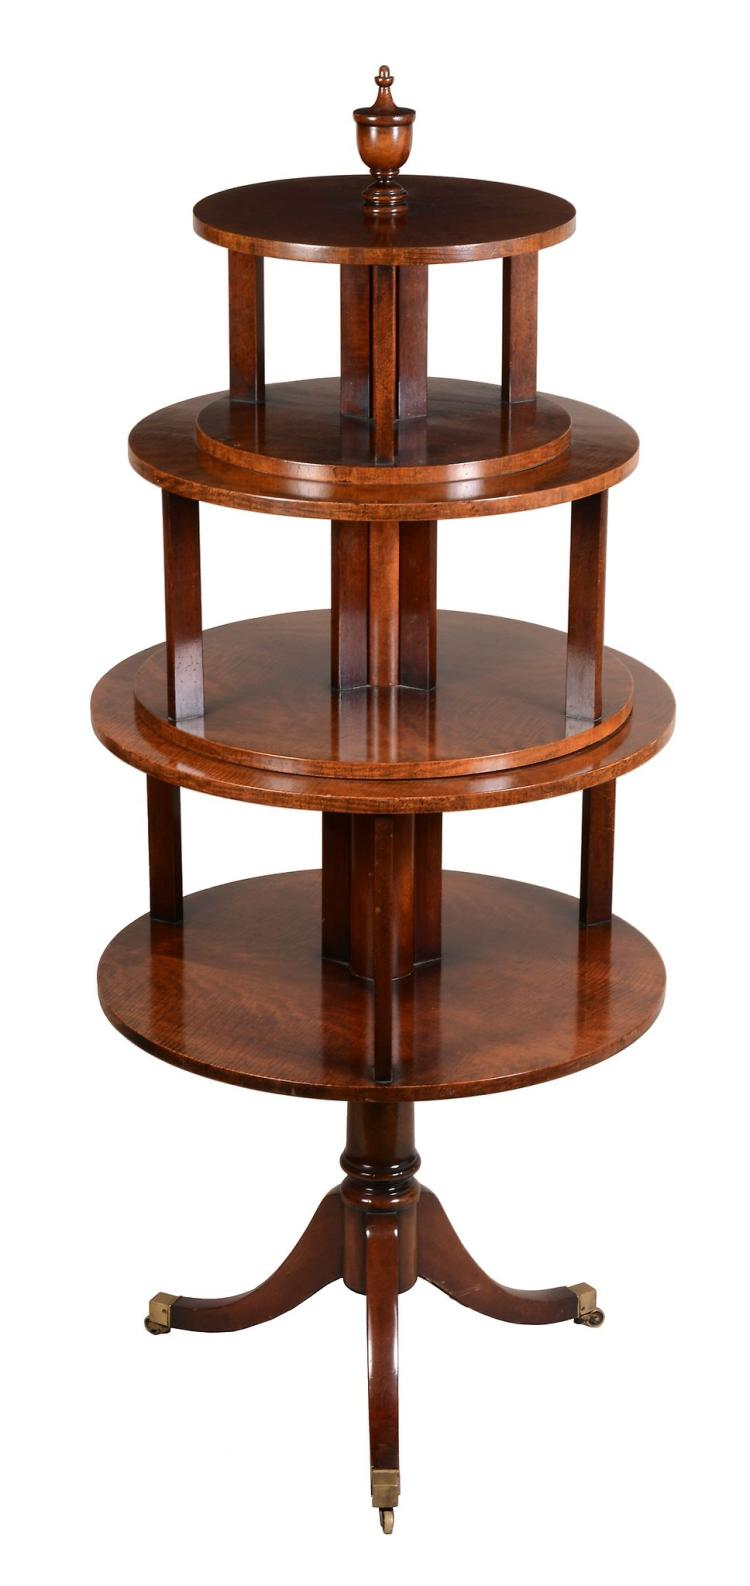 A fiddleback mahogany pedestal bookcase in Regency style , 20th century